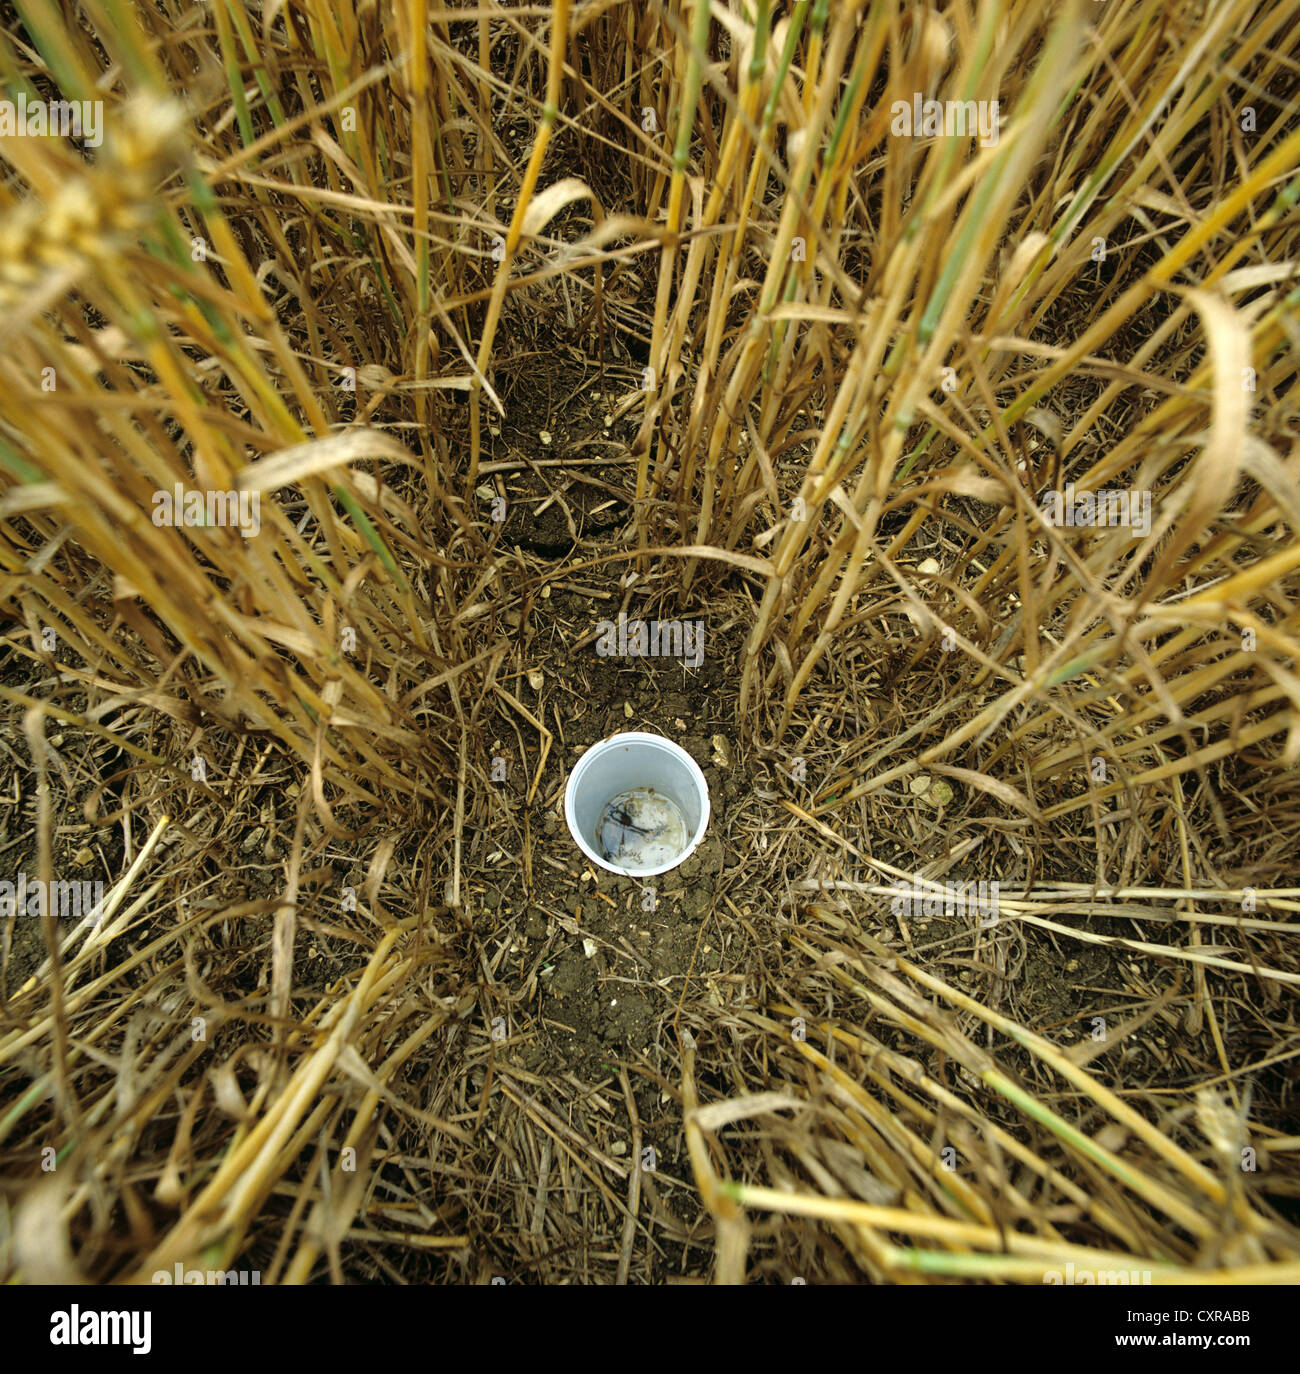 Pitfall trap for monitoring ground active arthropod populations placed in ripe wheat crop - Stock Image